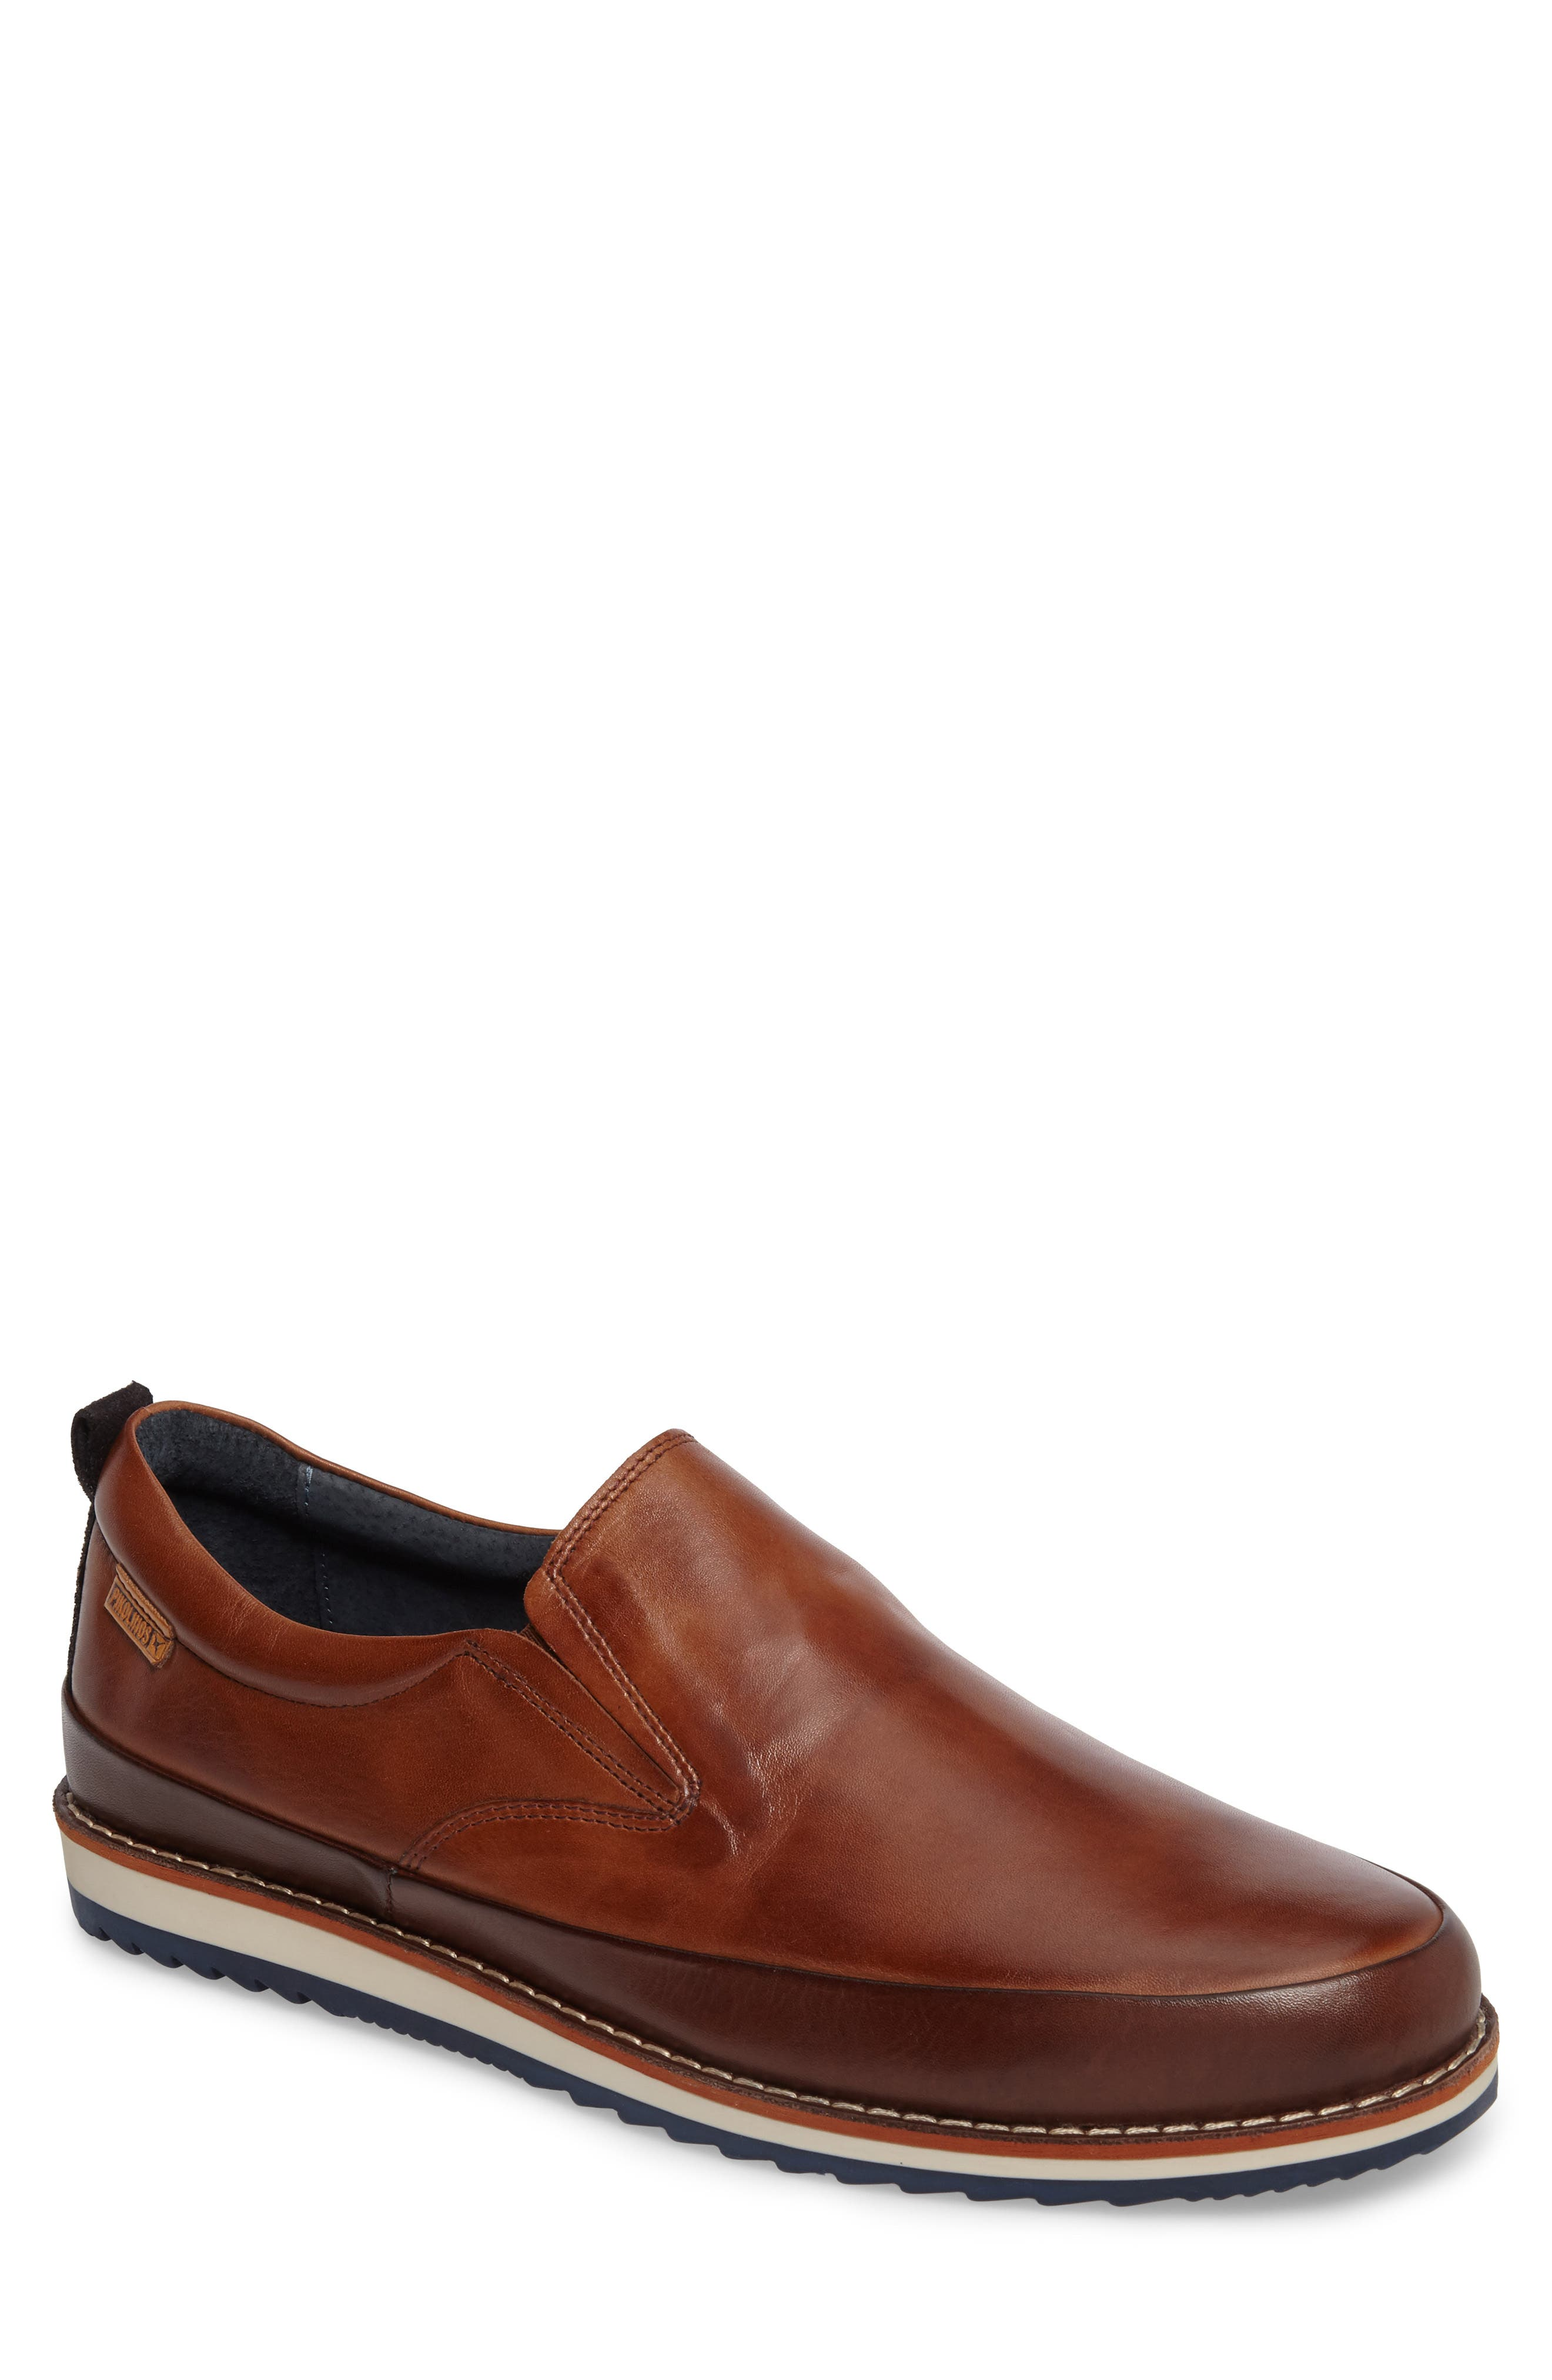 Biarritz Slip-On,                             Main thumbnail 1, color,                             Brown Leather